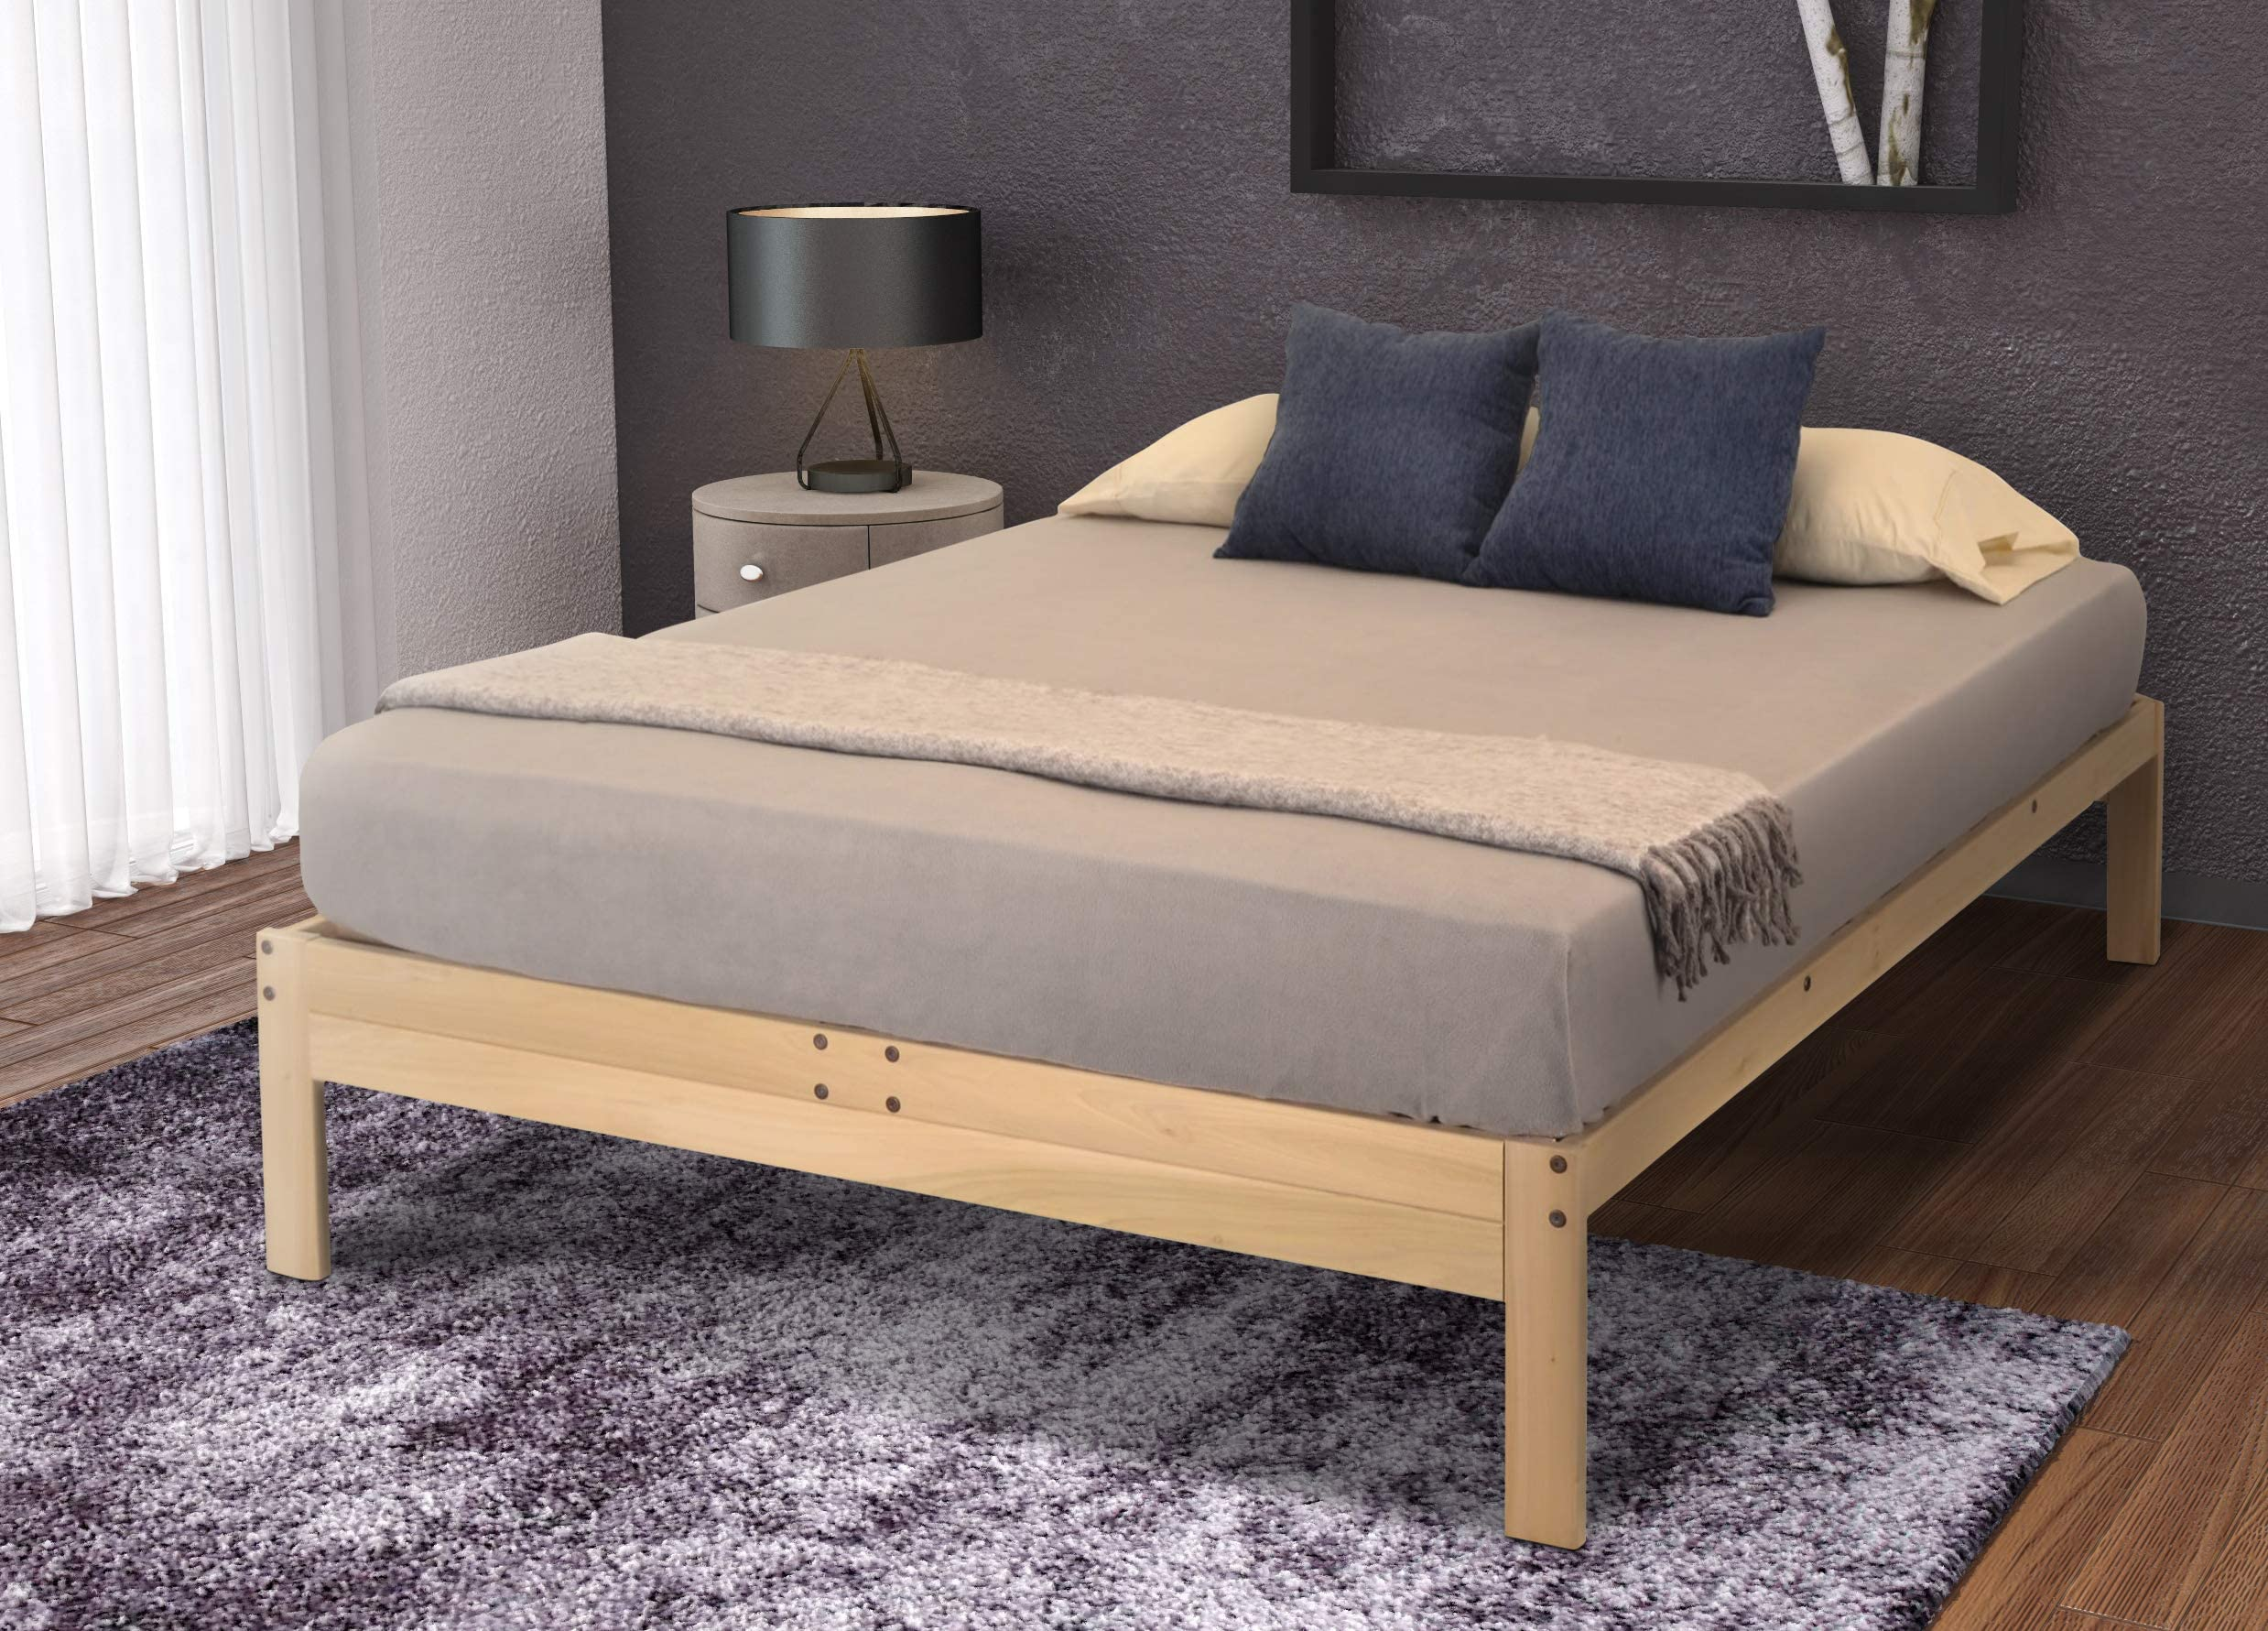 NcFnC03 Low Platform Solid Hardwood Bed with angled base frame and wide Head Board with attached tables; natural color